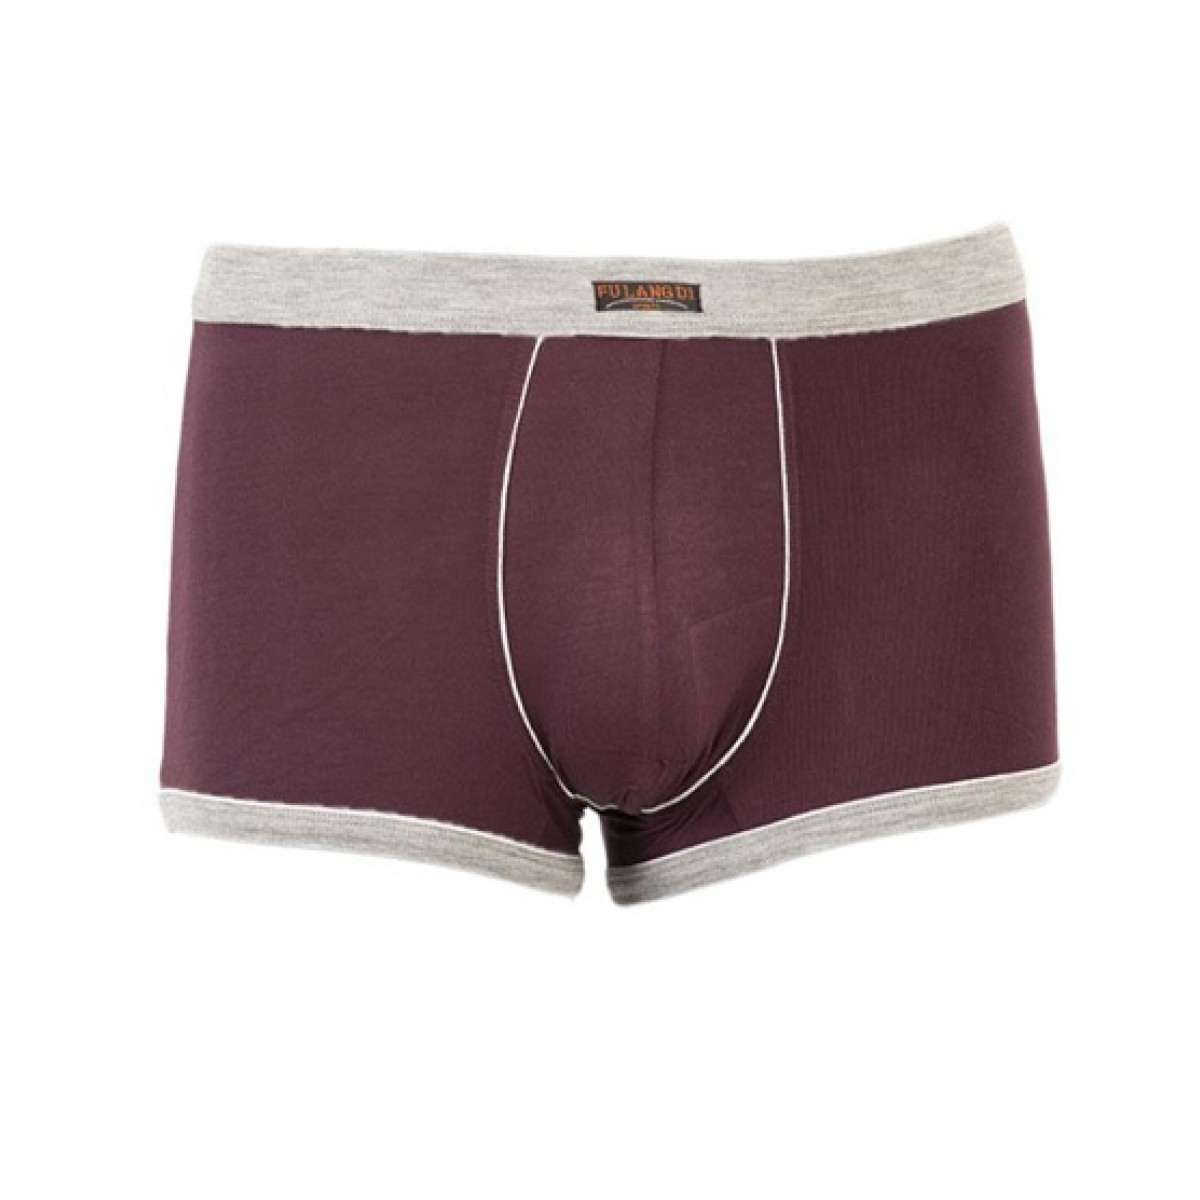 Asaan Buy Super Cotton Stretchable Sports Boxer For Men Maroon - Pack Of 3